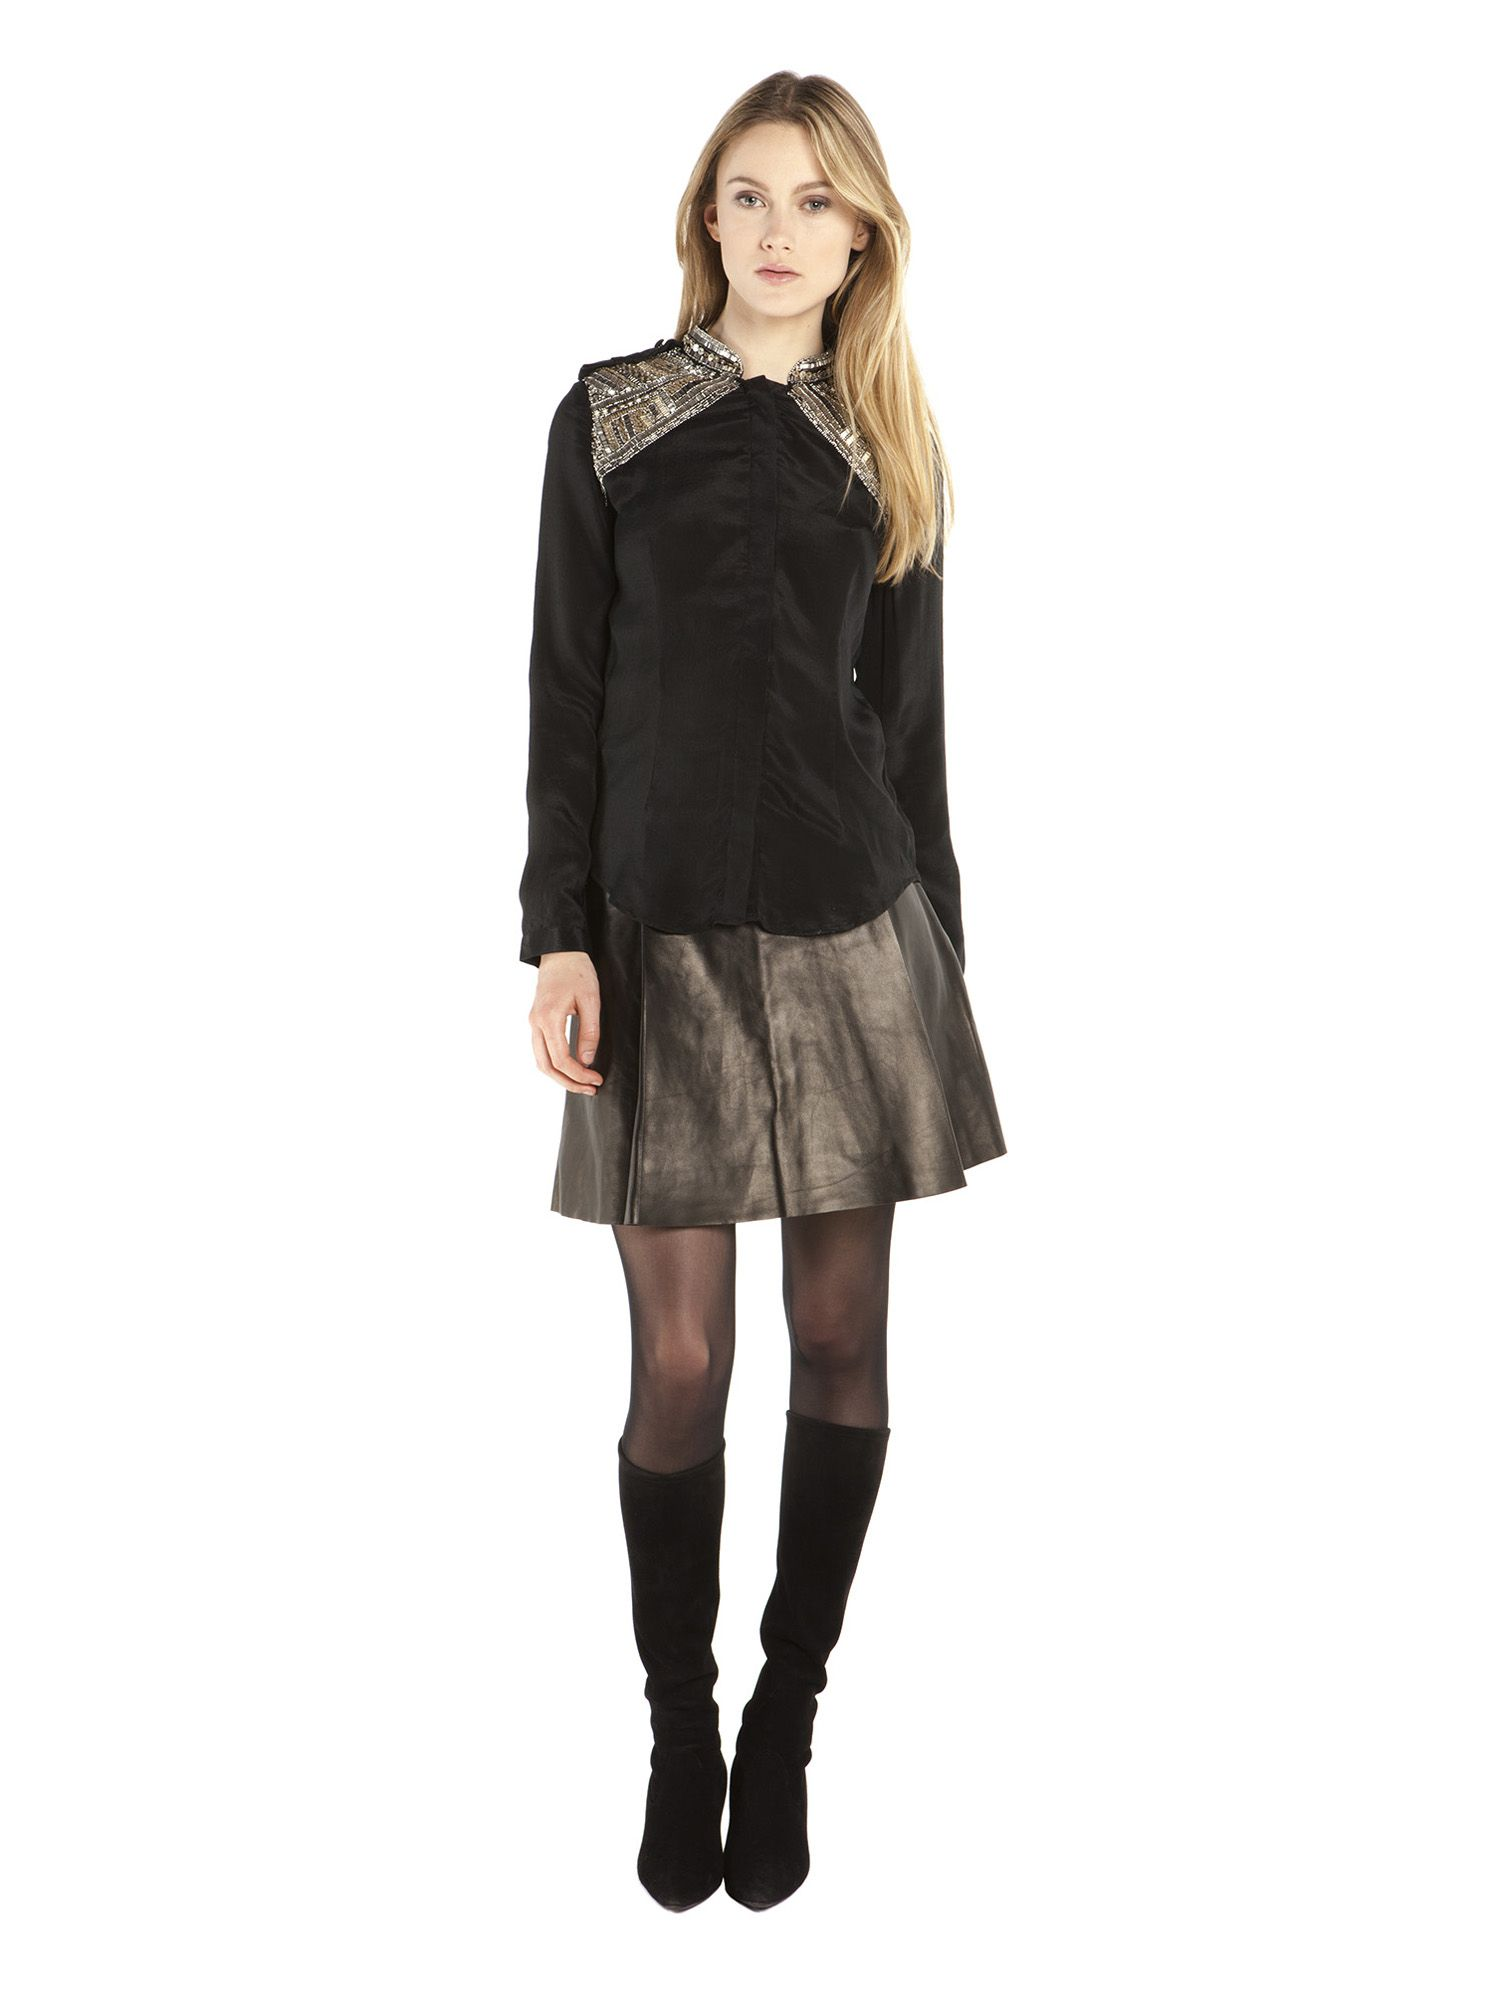 Sierra Blouse Black + Leather Skirt Black